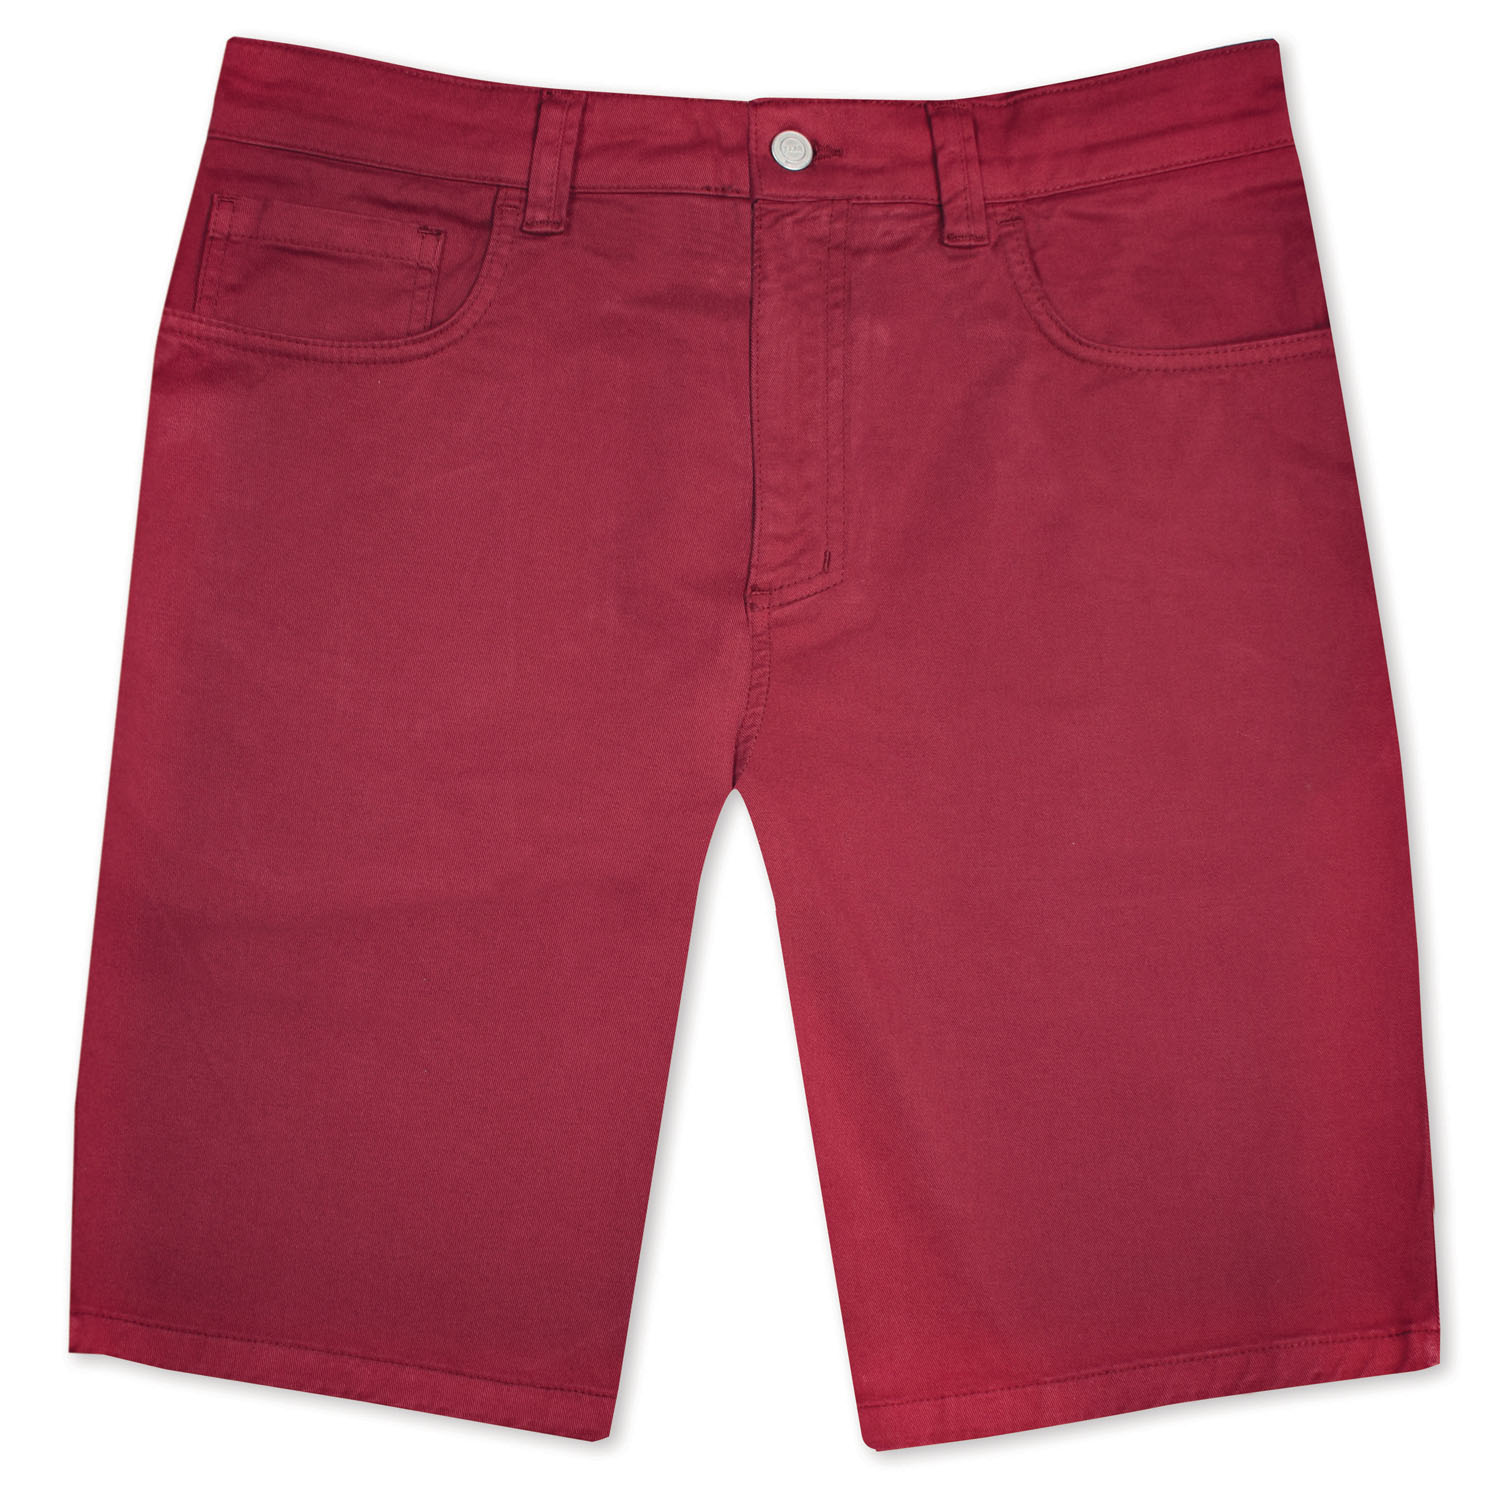 T-lab-mens-shorts-burgundy